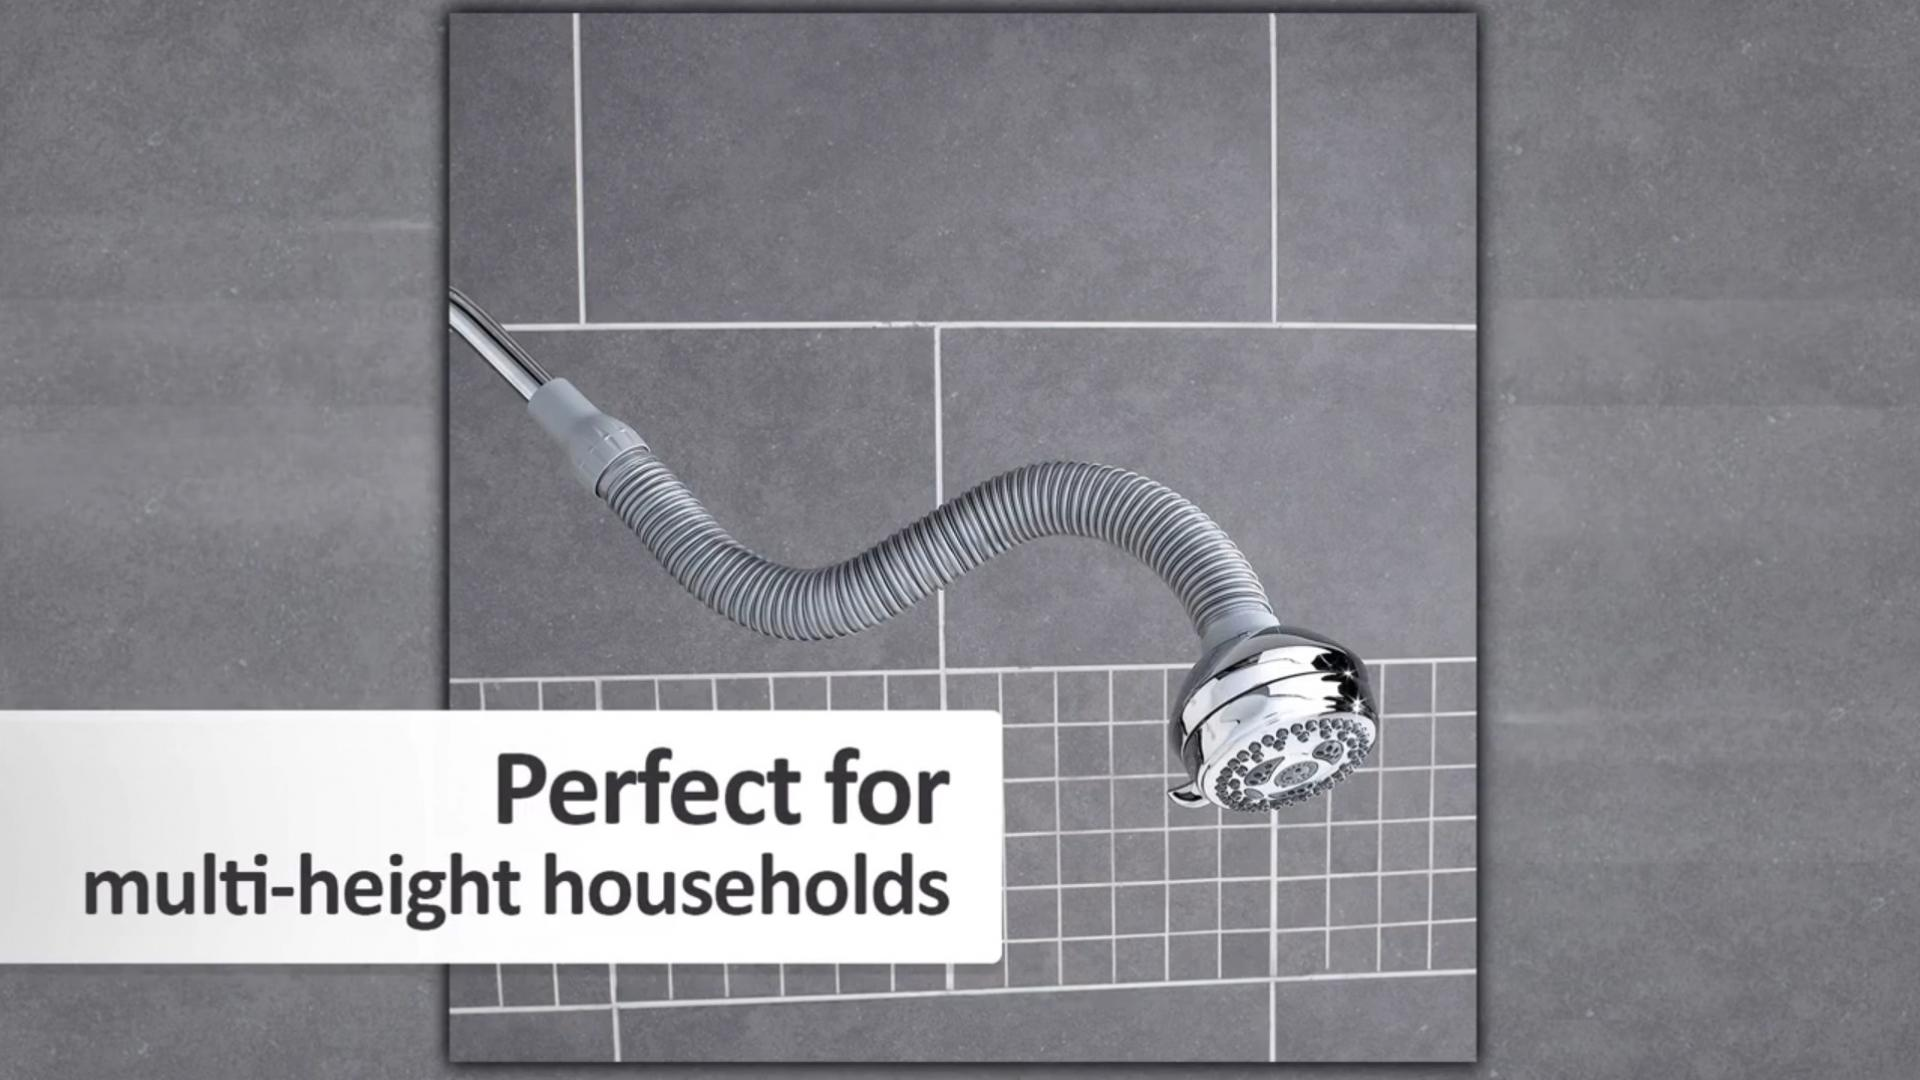 Waterpik PowerSpray and FlexNeck Showerhead